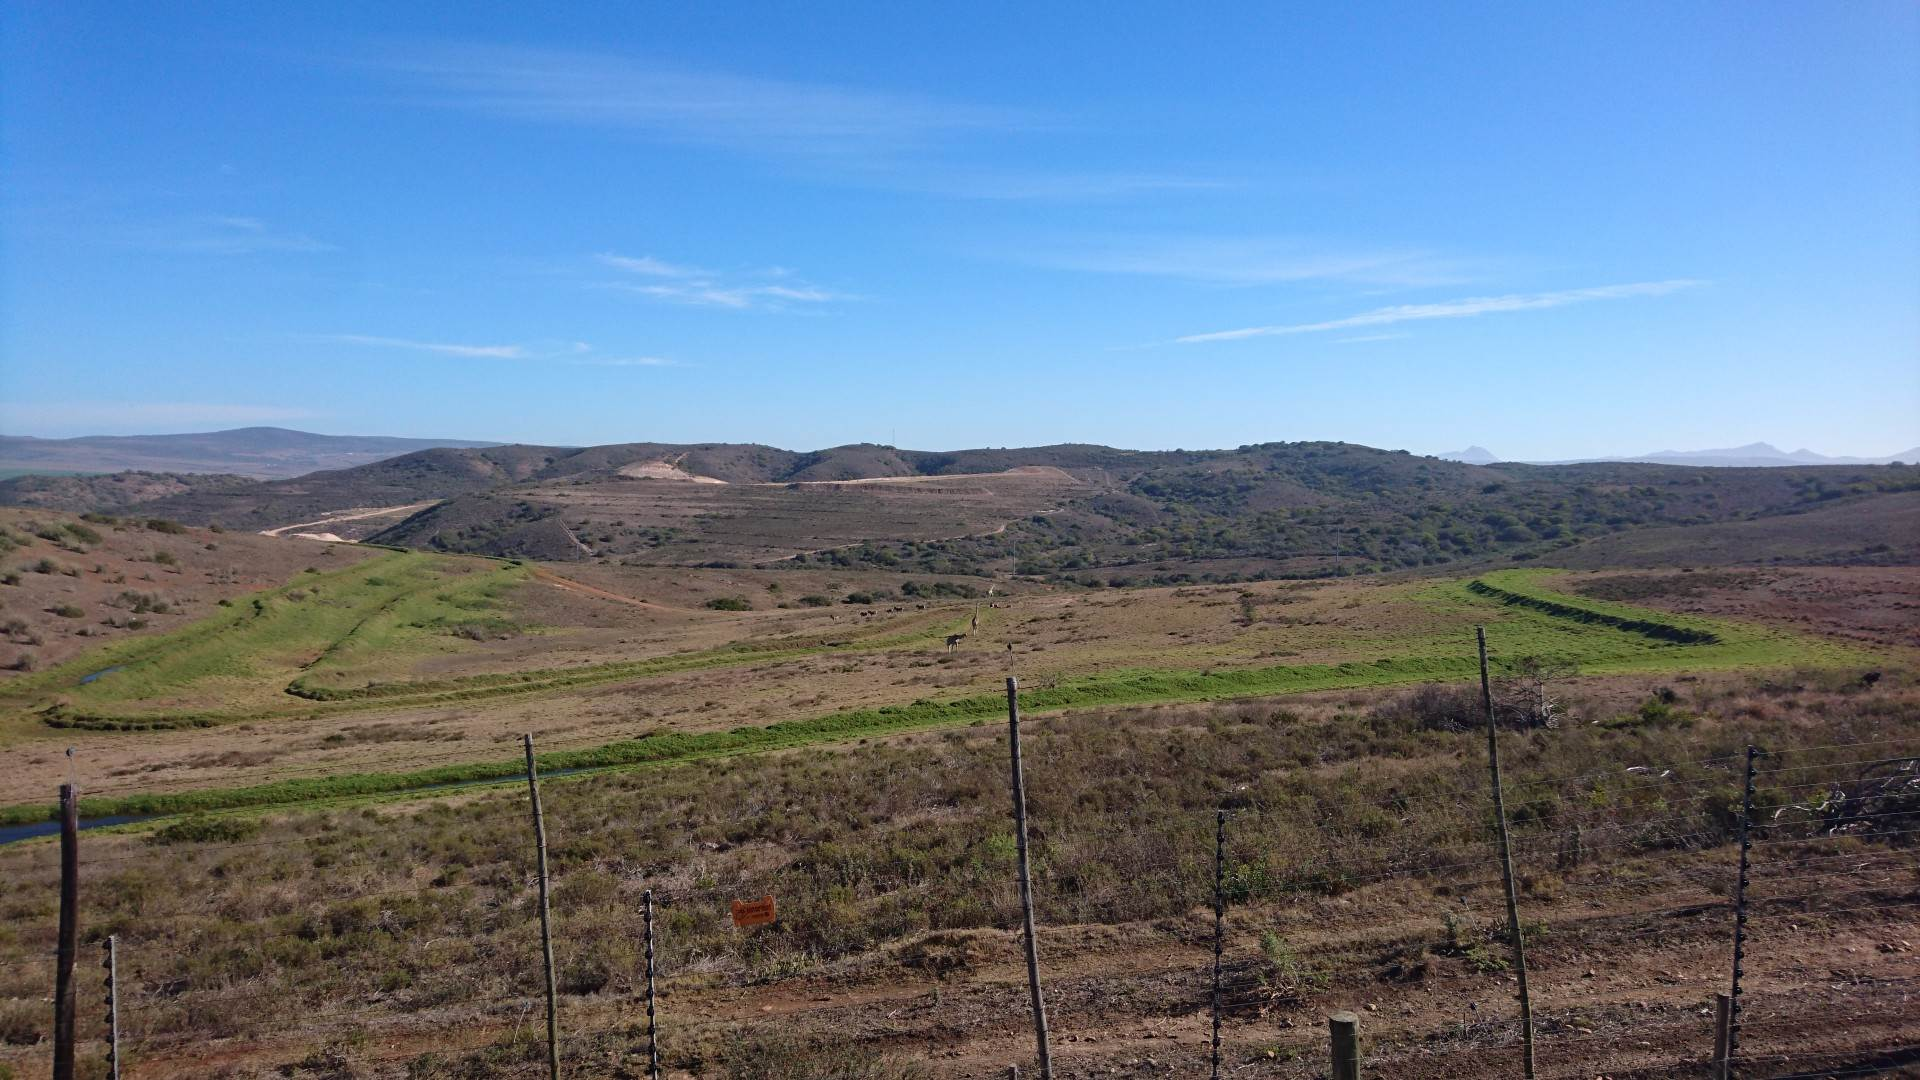 Vacant Land Residential Pending Sale In Monte Christo